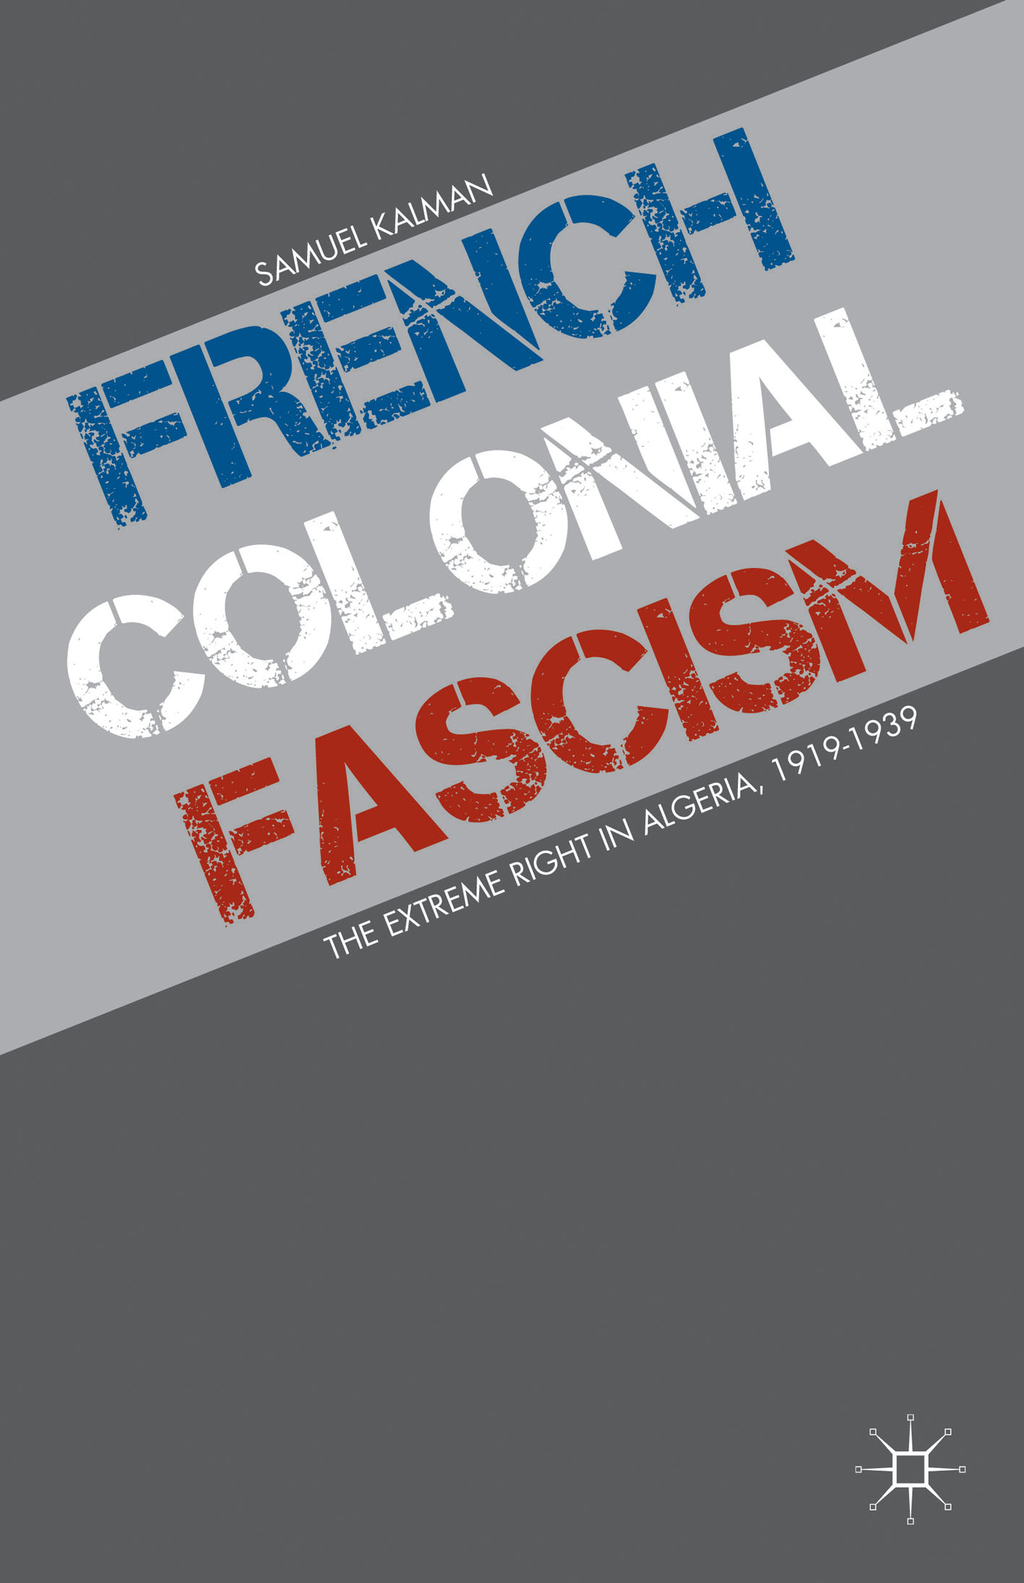 French Colonial Fascism The Extreme Right in Algeria,  1919-1939